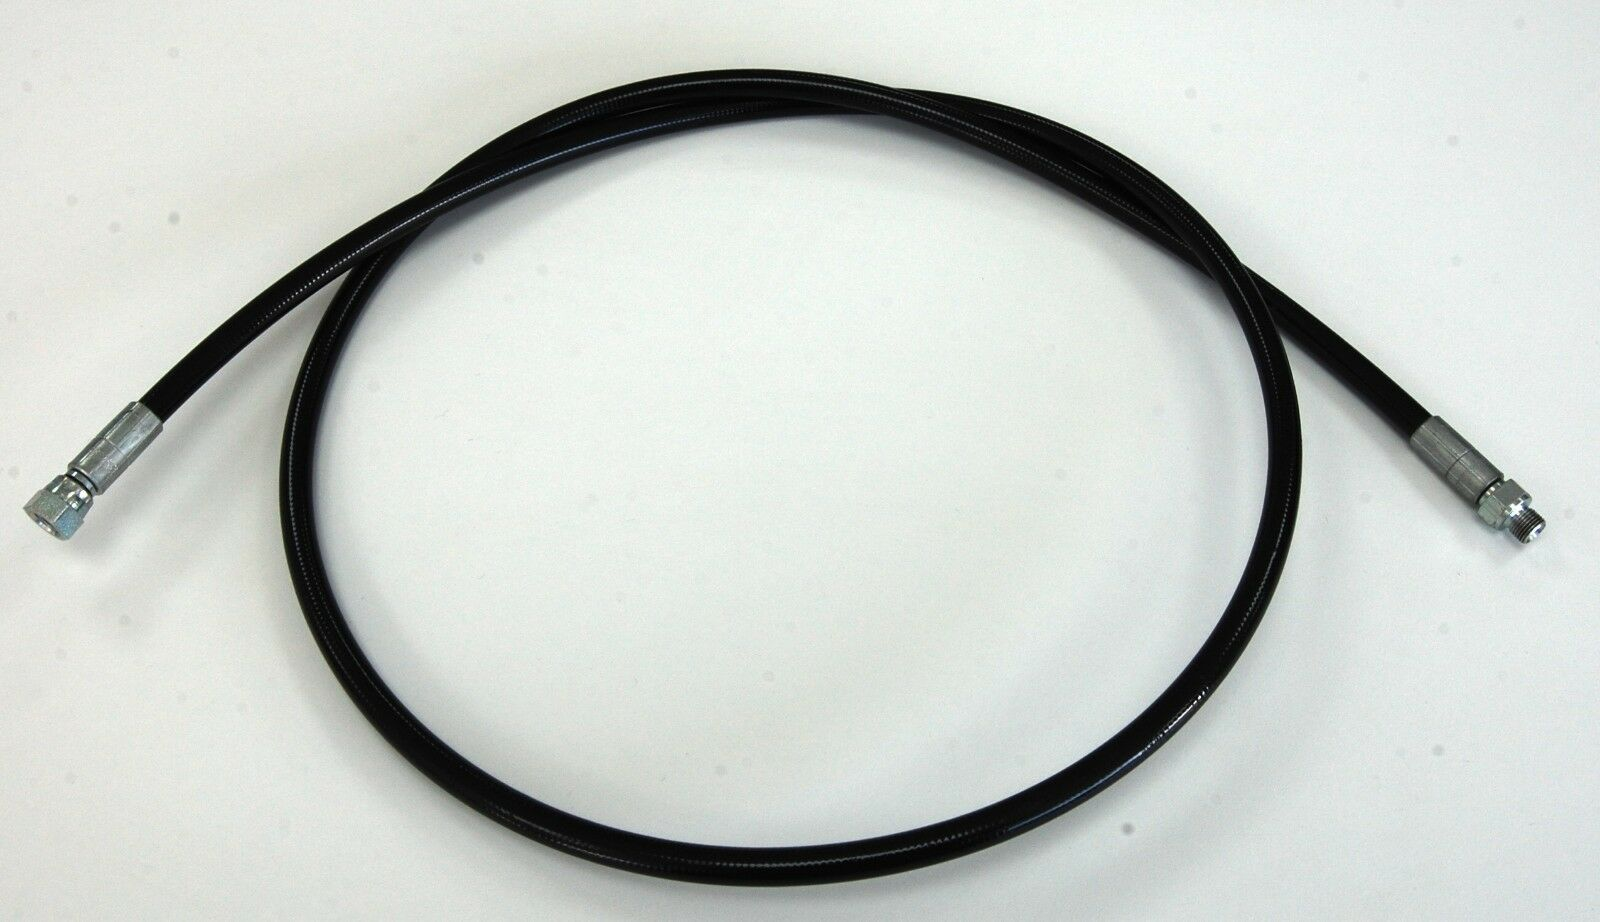 Hill Pumps Replacement Extended 1.5m Hose For All Hill PCP Air Pumps - 06R19004